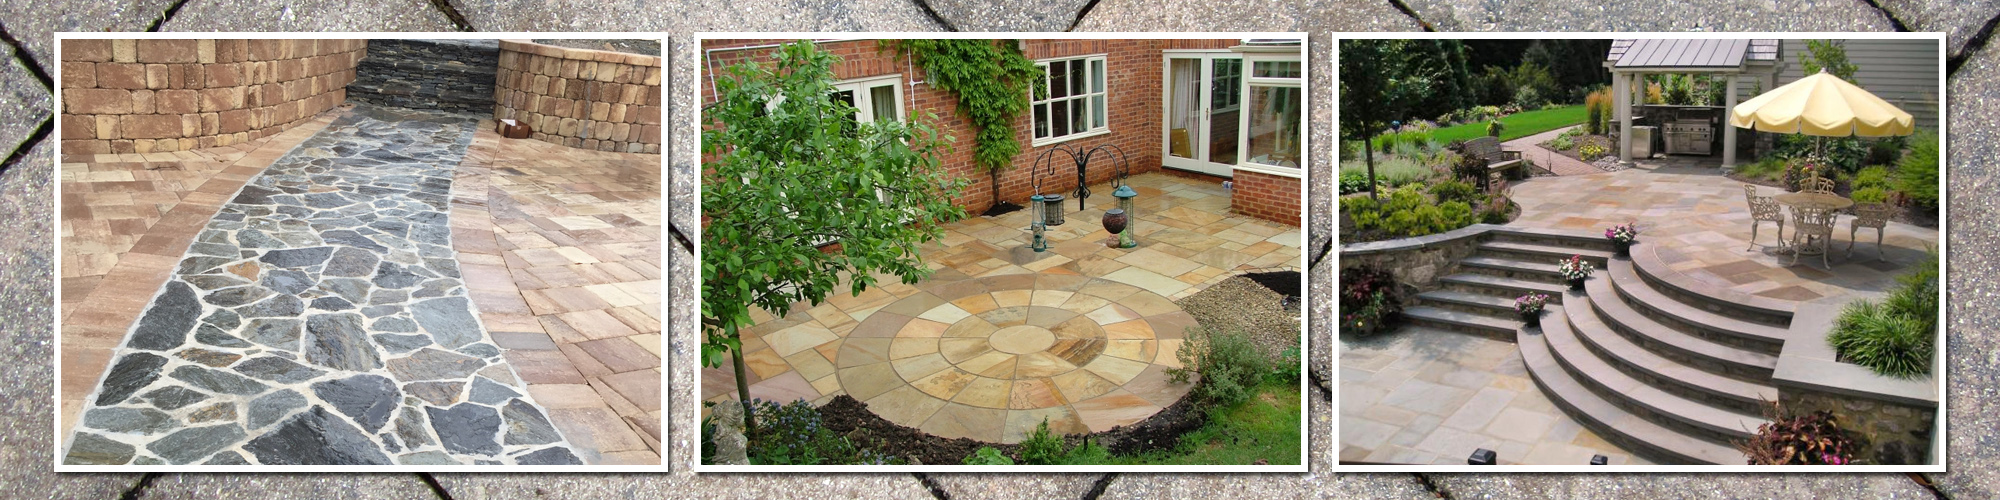 Patio Company In Jacksonville Fl Discount For Senior